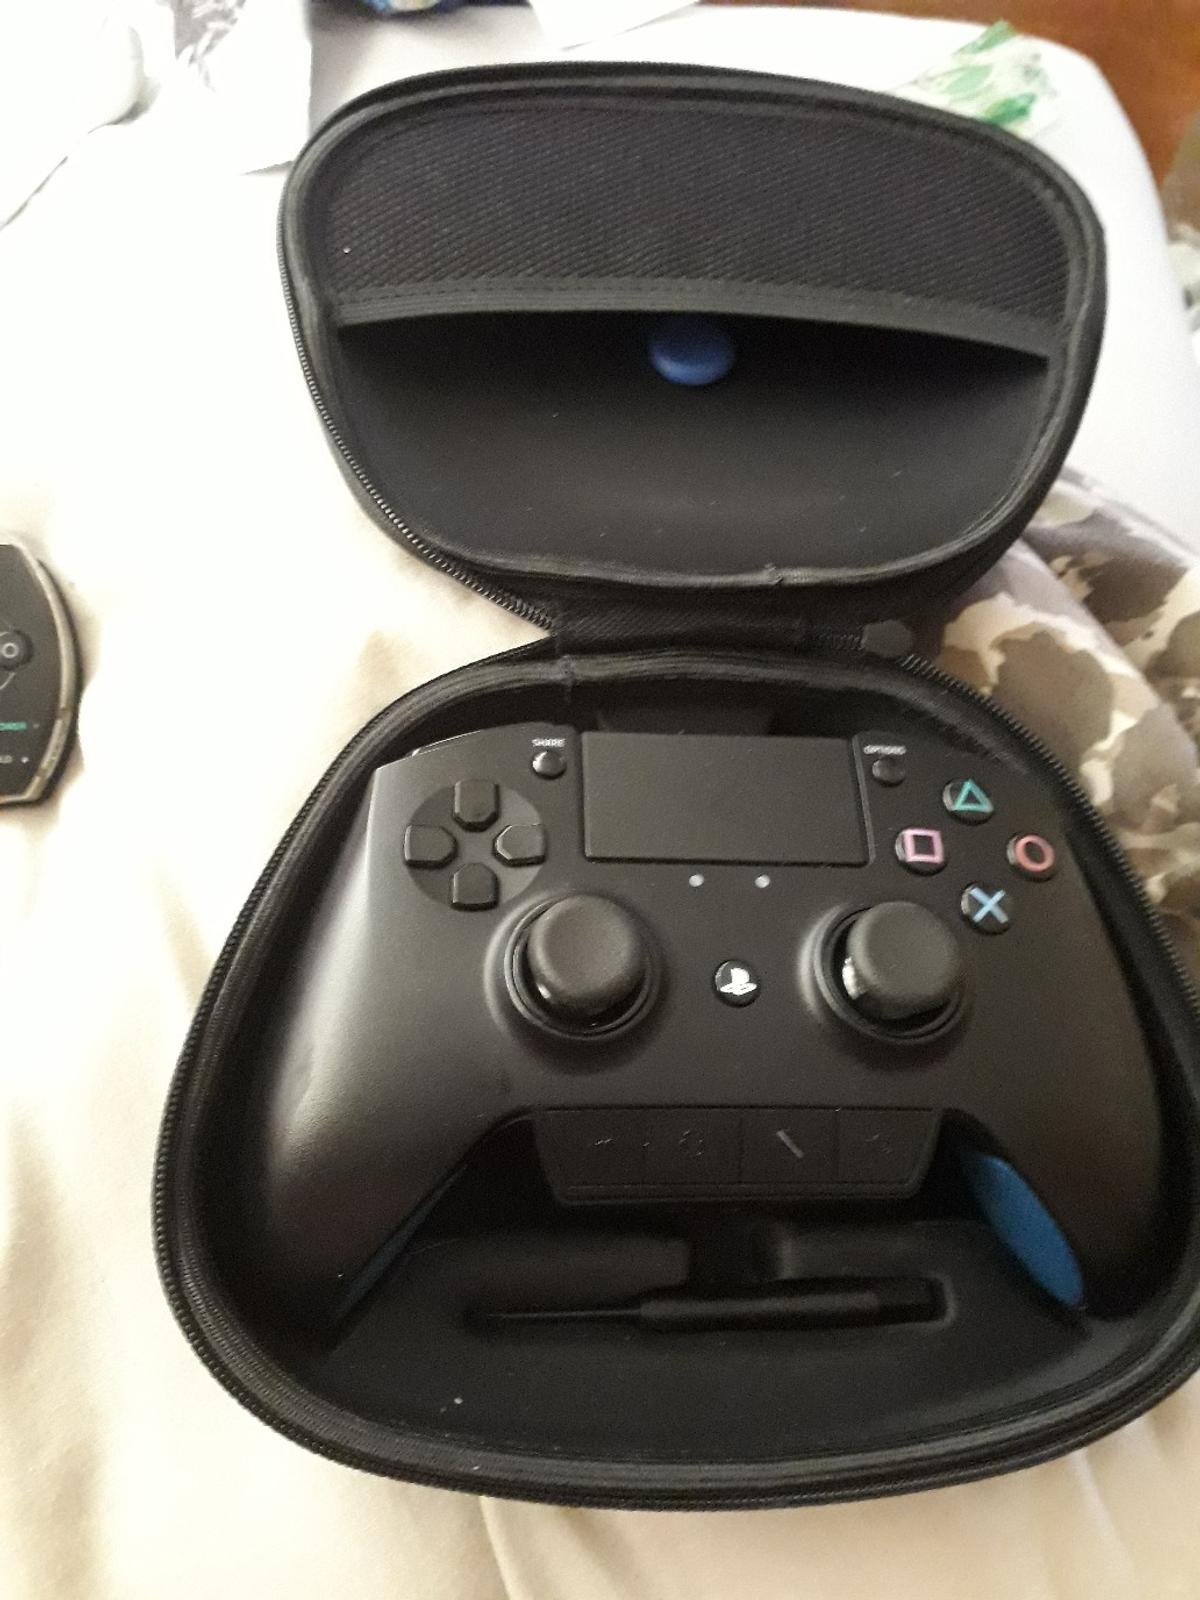 Razer Raiju Ps4 Controller And Psp In Rm13 Havering For 70 00 For Sale Shpock 158,349 likes · 19,428 talking about this. razer raiju ps4 controller and psp